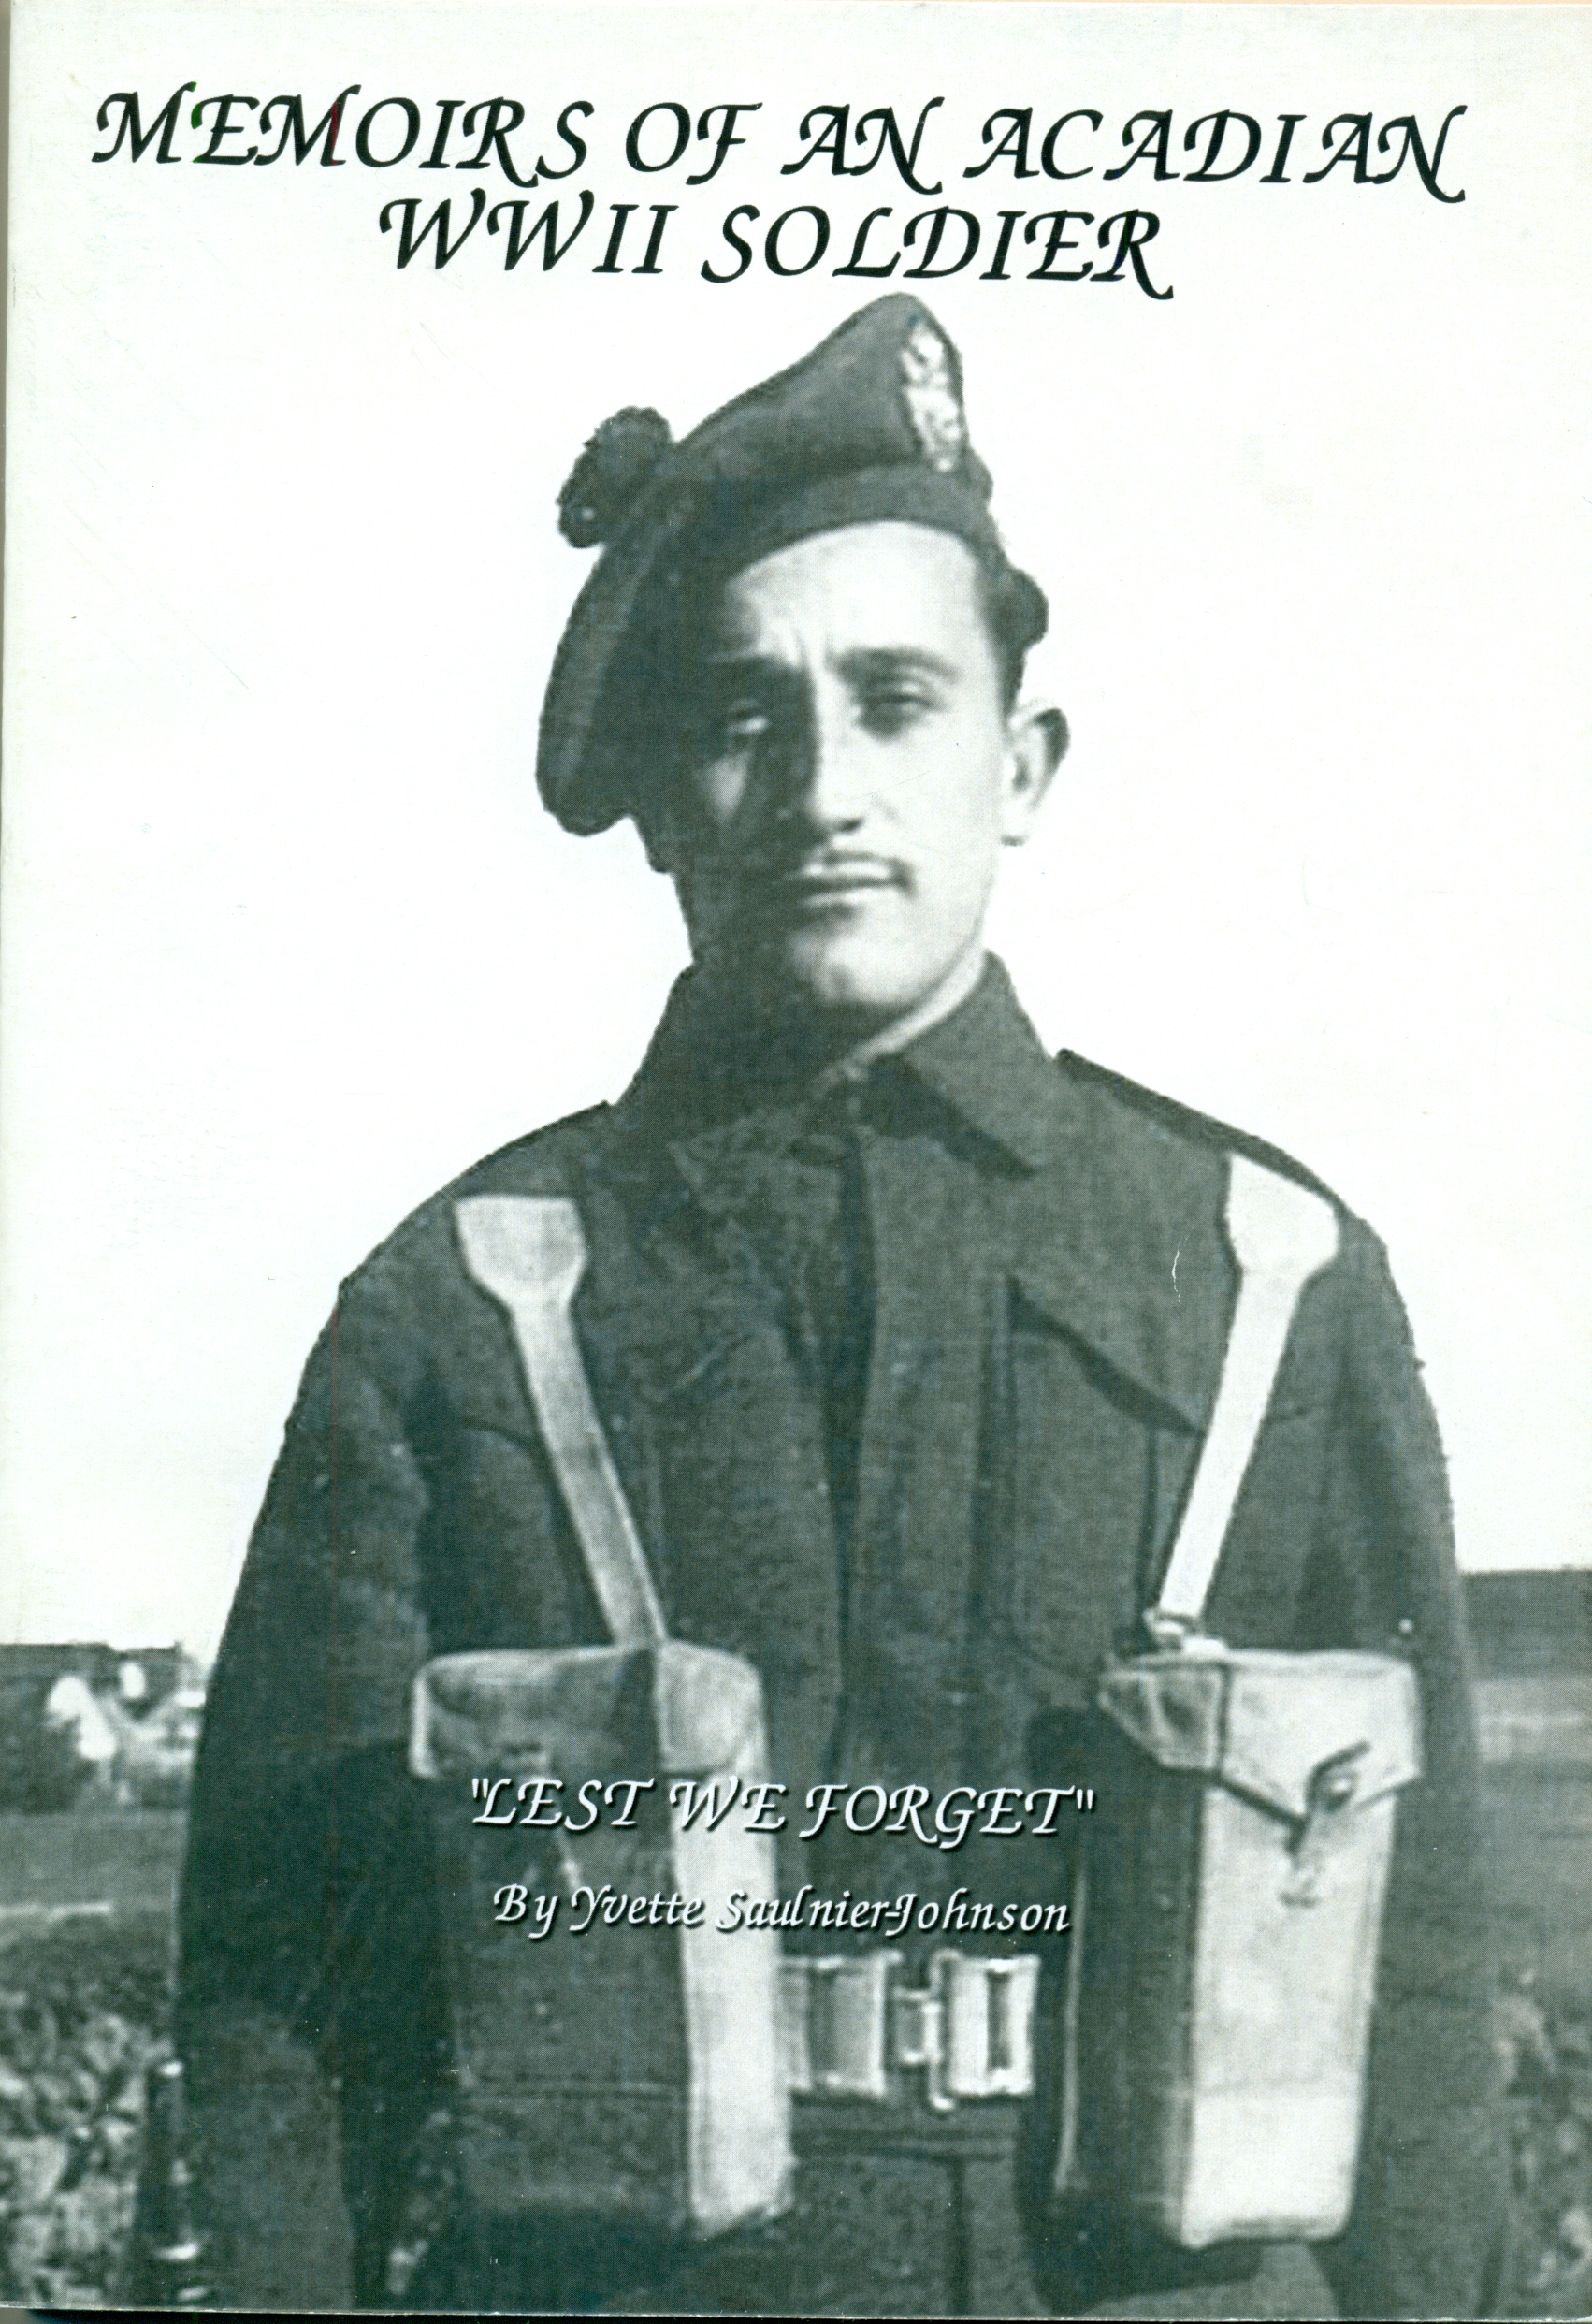 Memoirs of an Acadian WWII Soldier